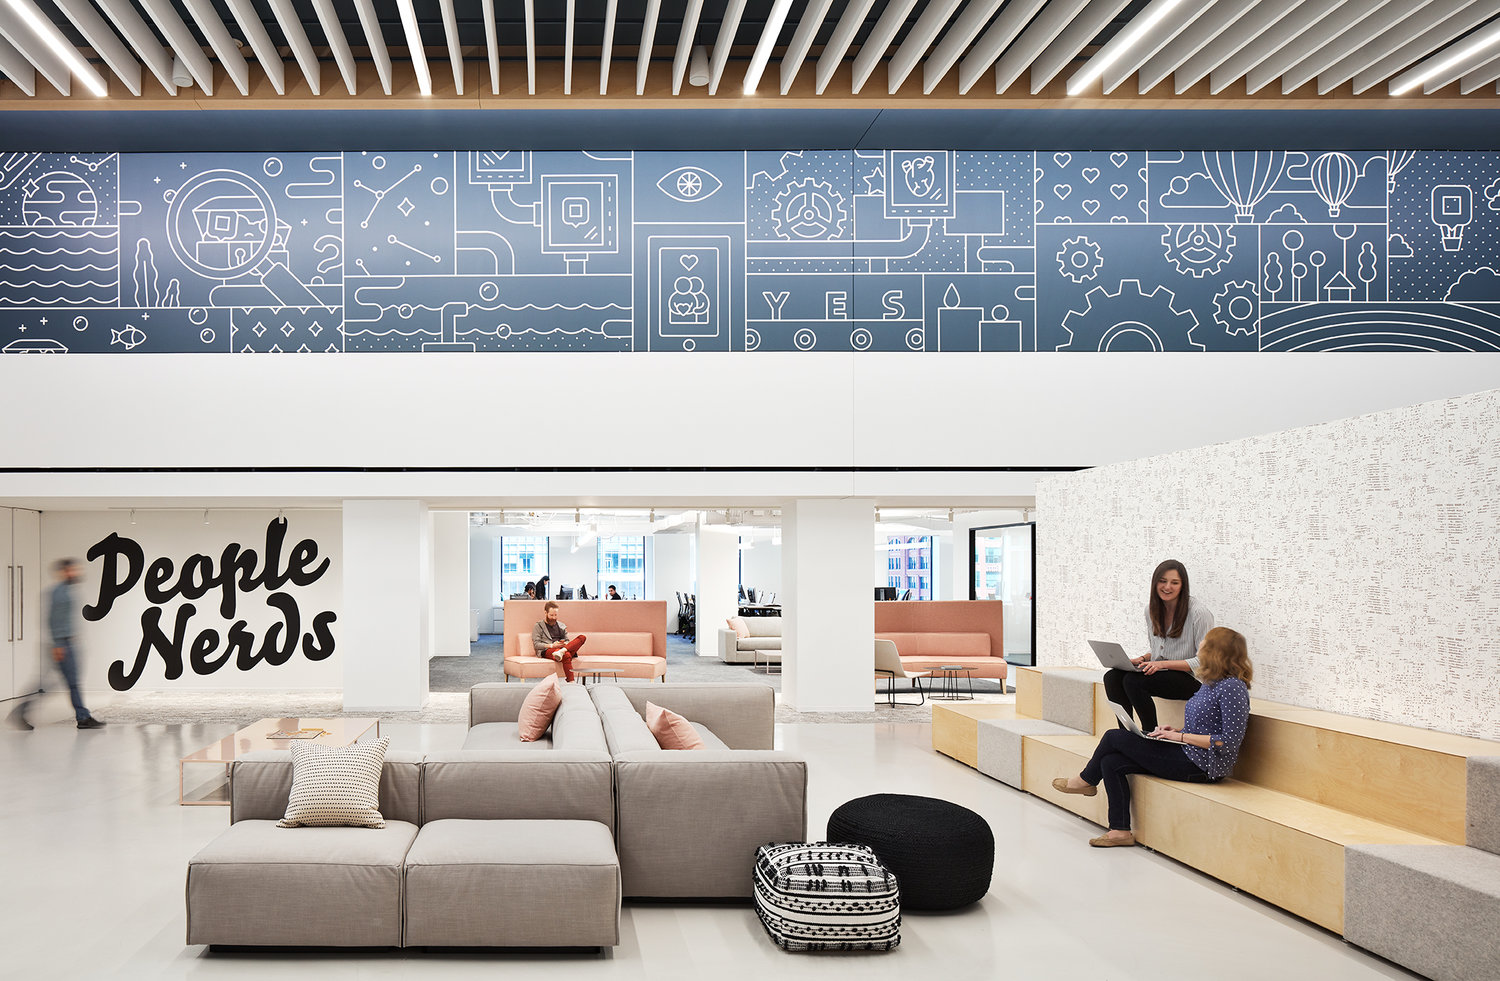 One of two 65 ft wall decals designed for dscout's new home atrium space. Photo by Kendall McCaugherty at Hall + Merrick Photographers.